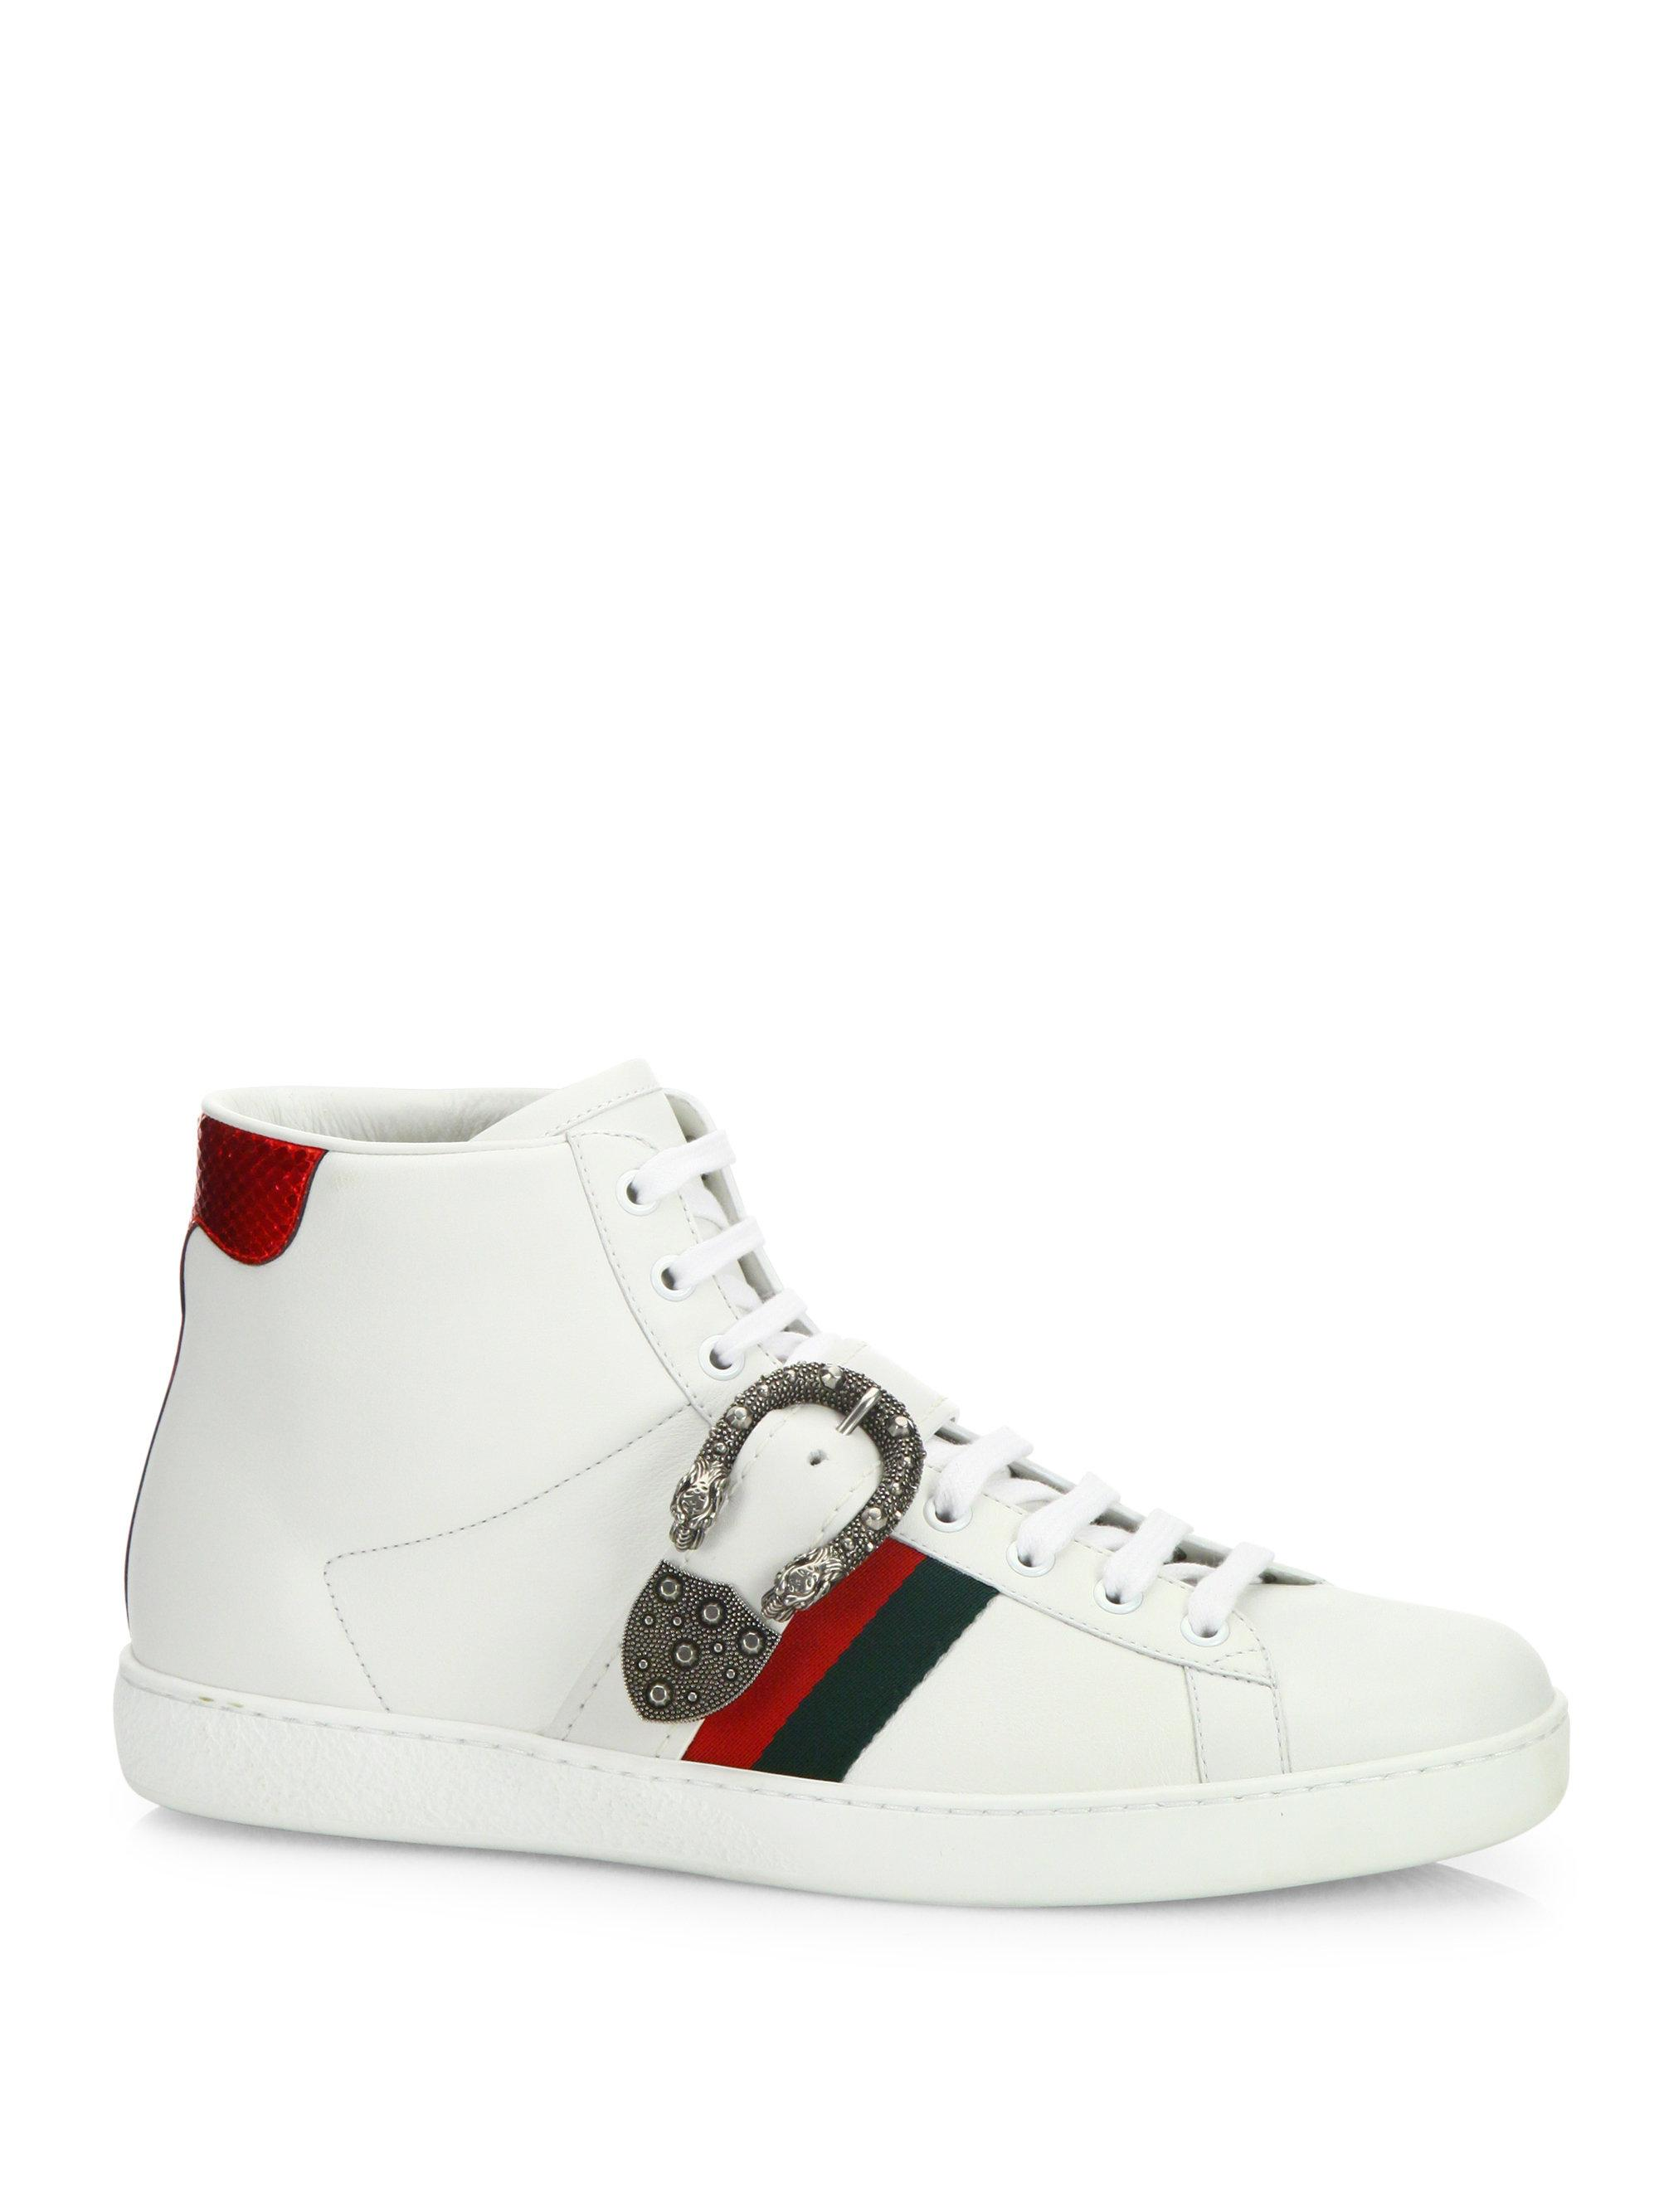 a0ee009640d4 Lyst - Gucci New Ace Belt Leather High-top Sneakers in White for Men